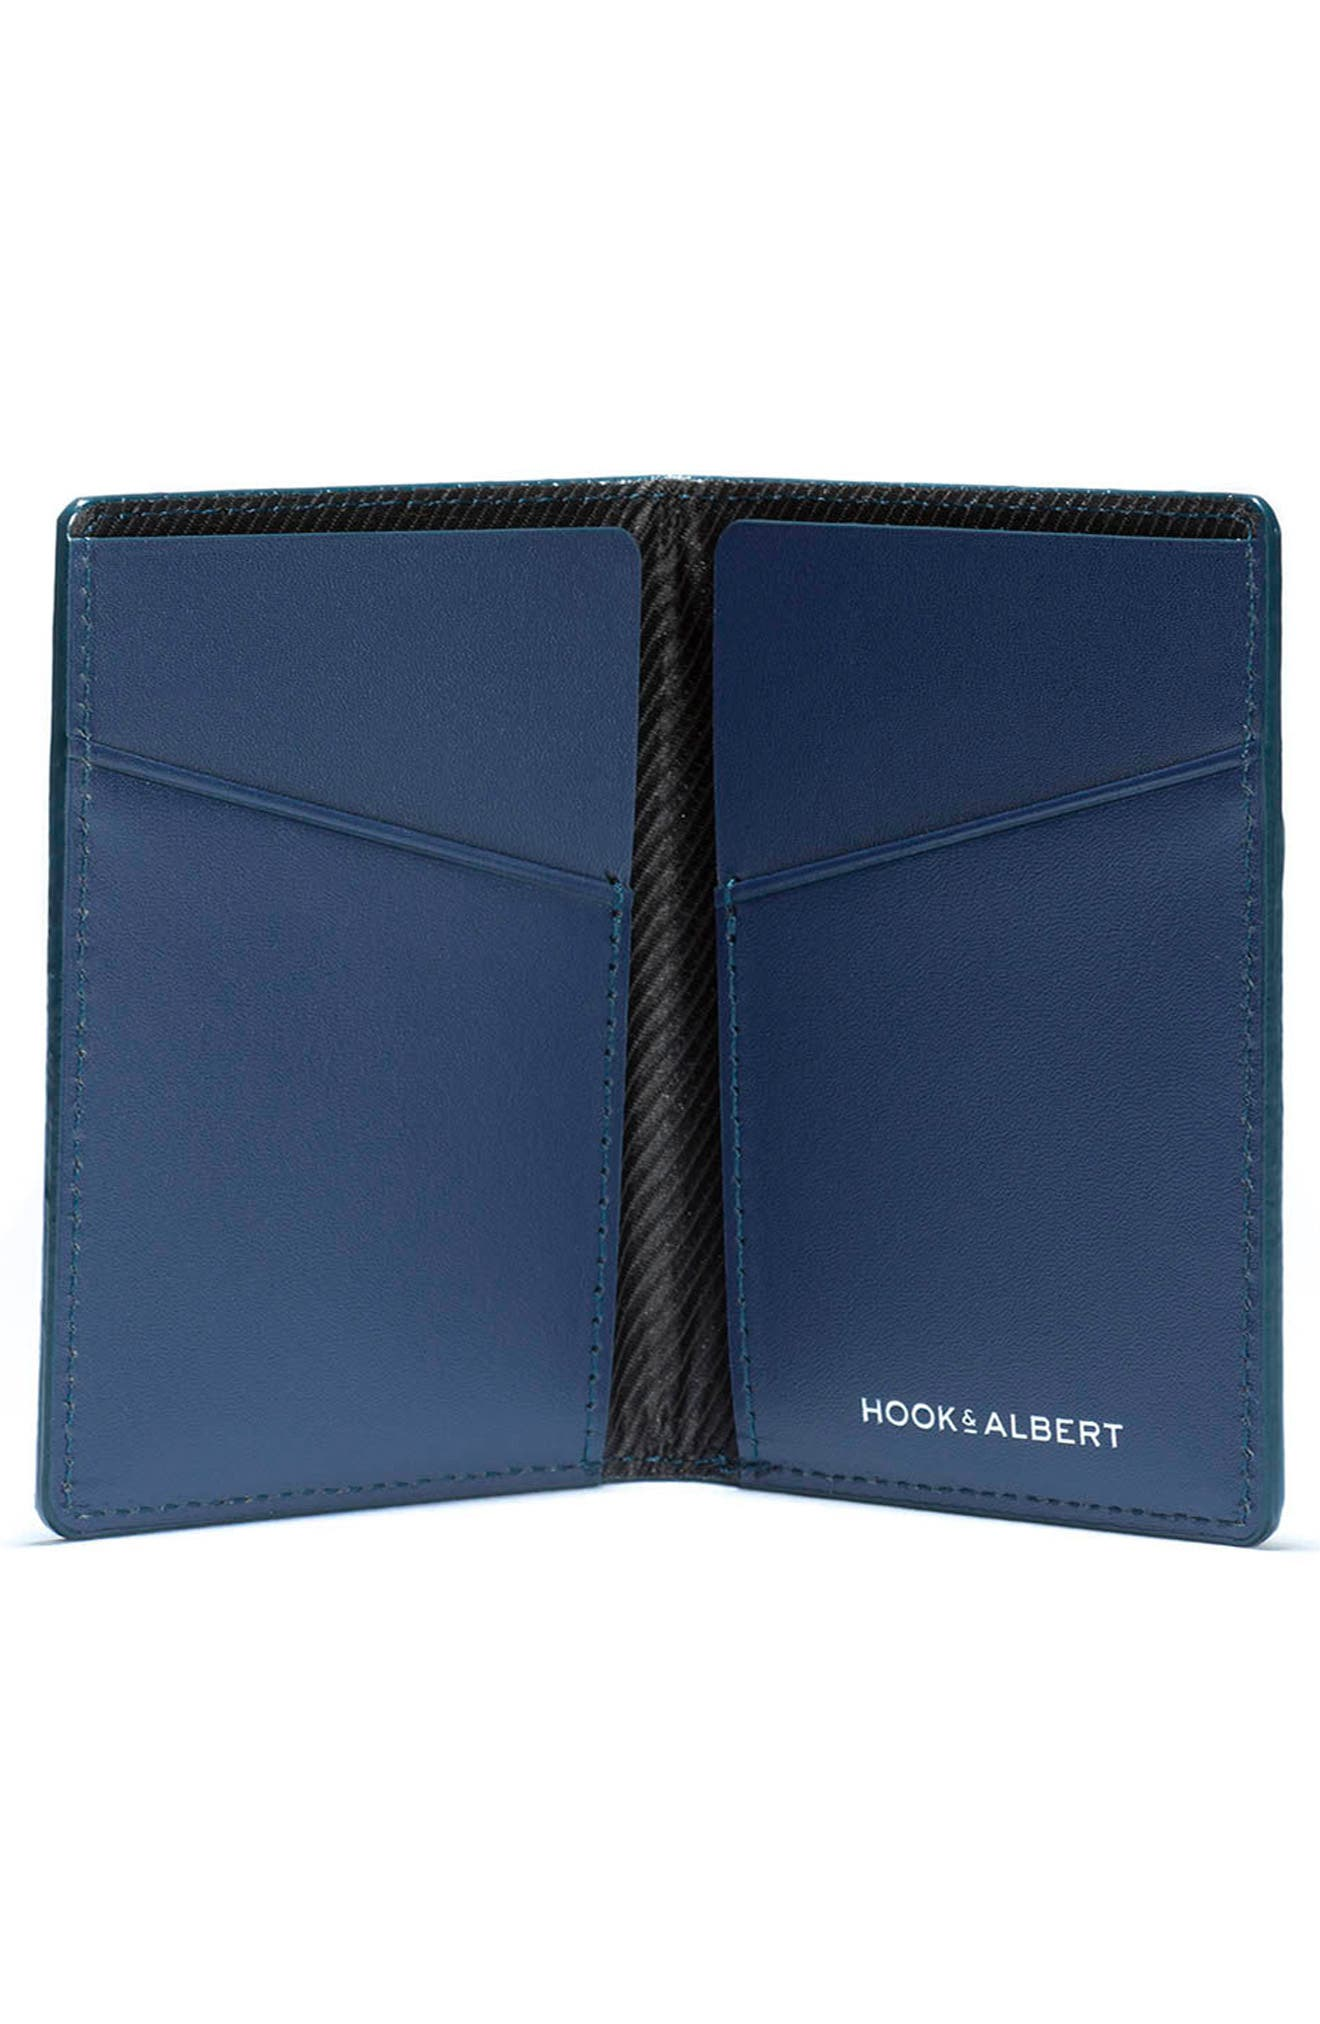 Vertical Leather Wallet,                             Alternate thumbnail 2, color,                             Navy